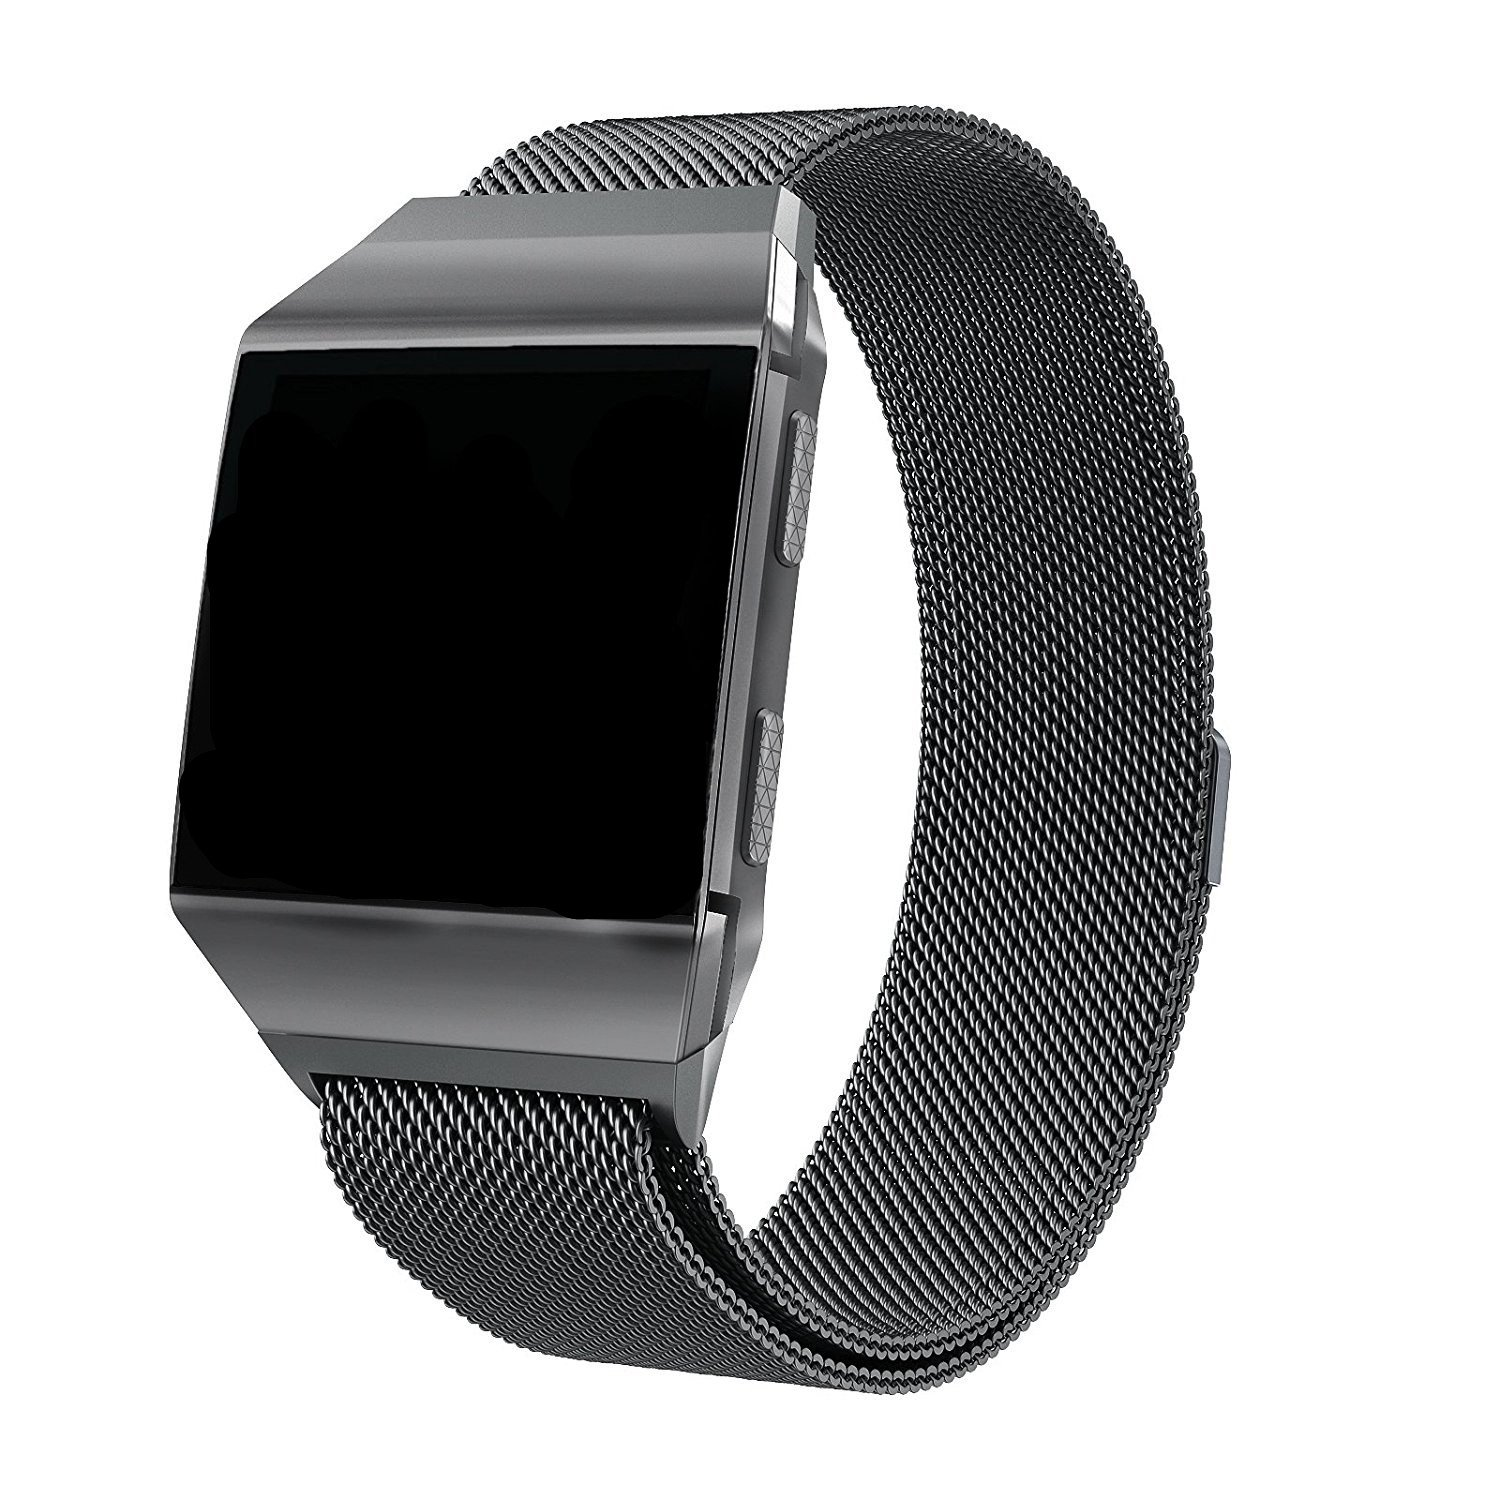 Fitbit Ionic Bands Accessories, SWAWS Milanese Loop Stainless Steel Watch Band Strap with Magnetic Lock for Fitbit Ionic Smartwatch,Small and Large ...